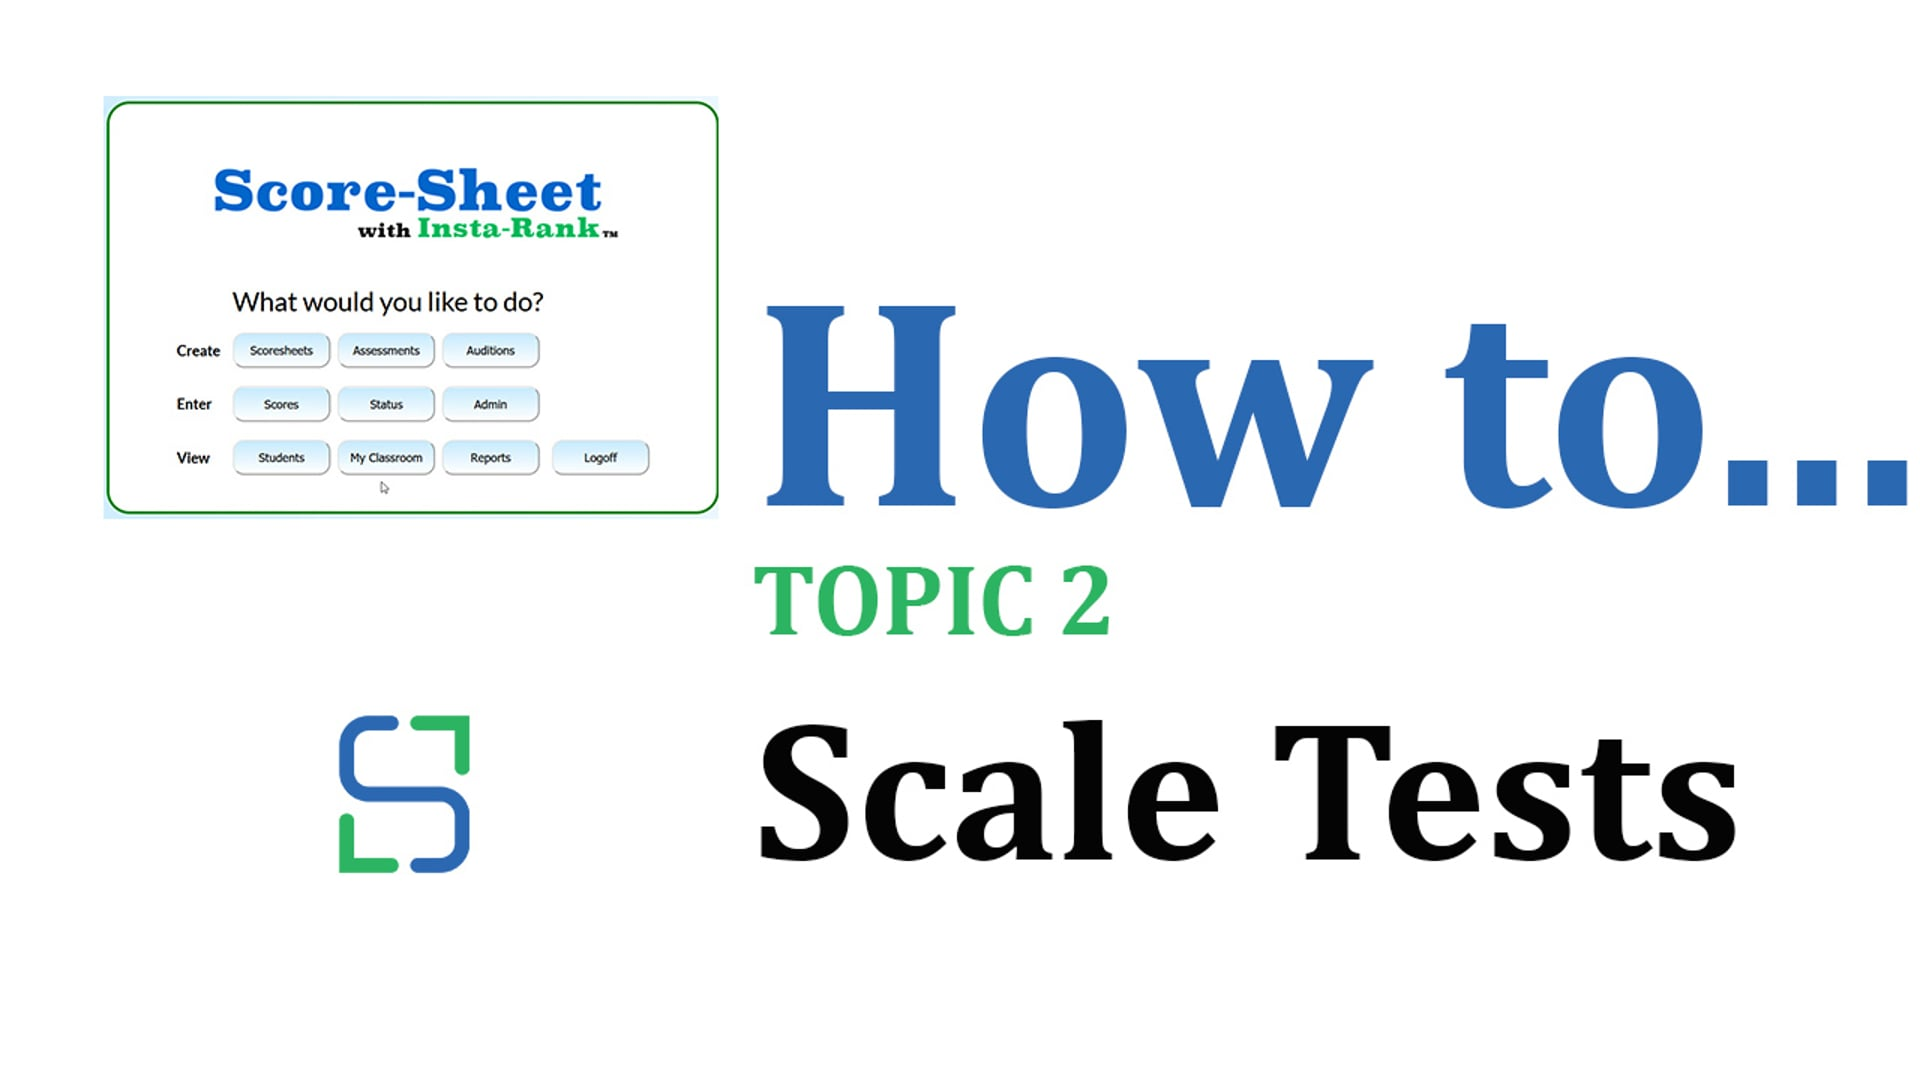 10 - SCALE TESTS